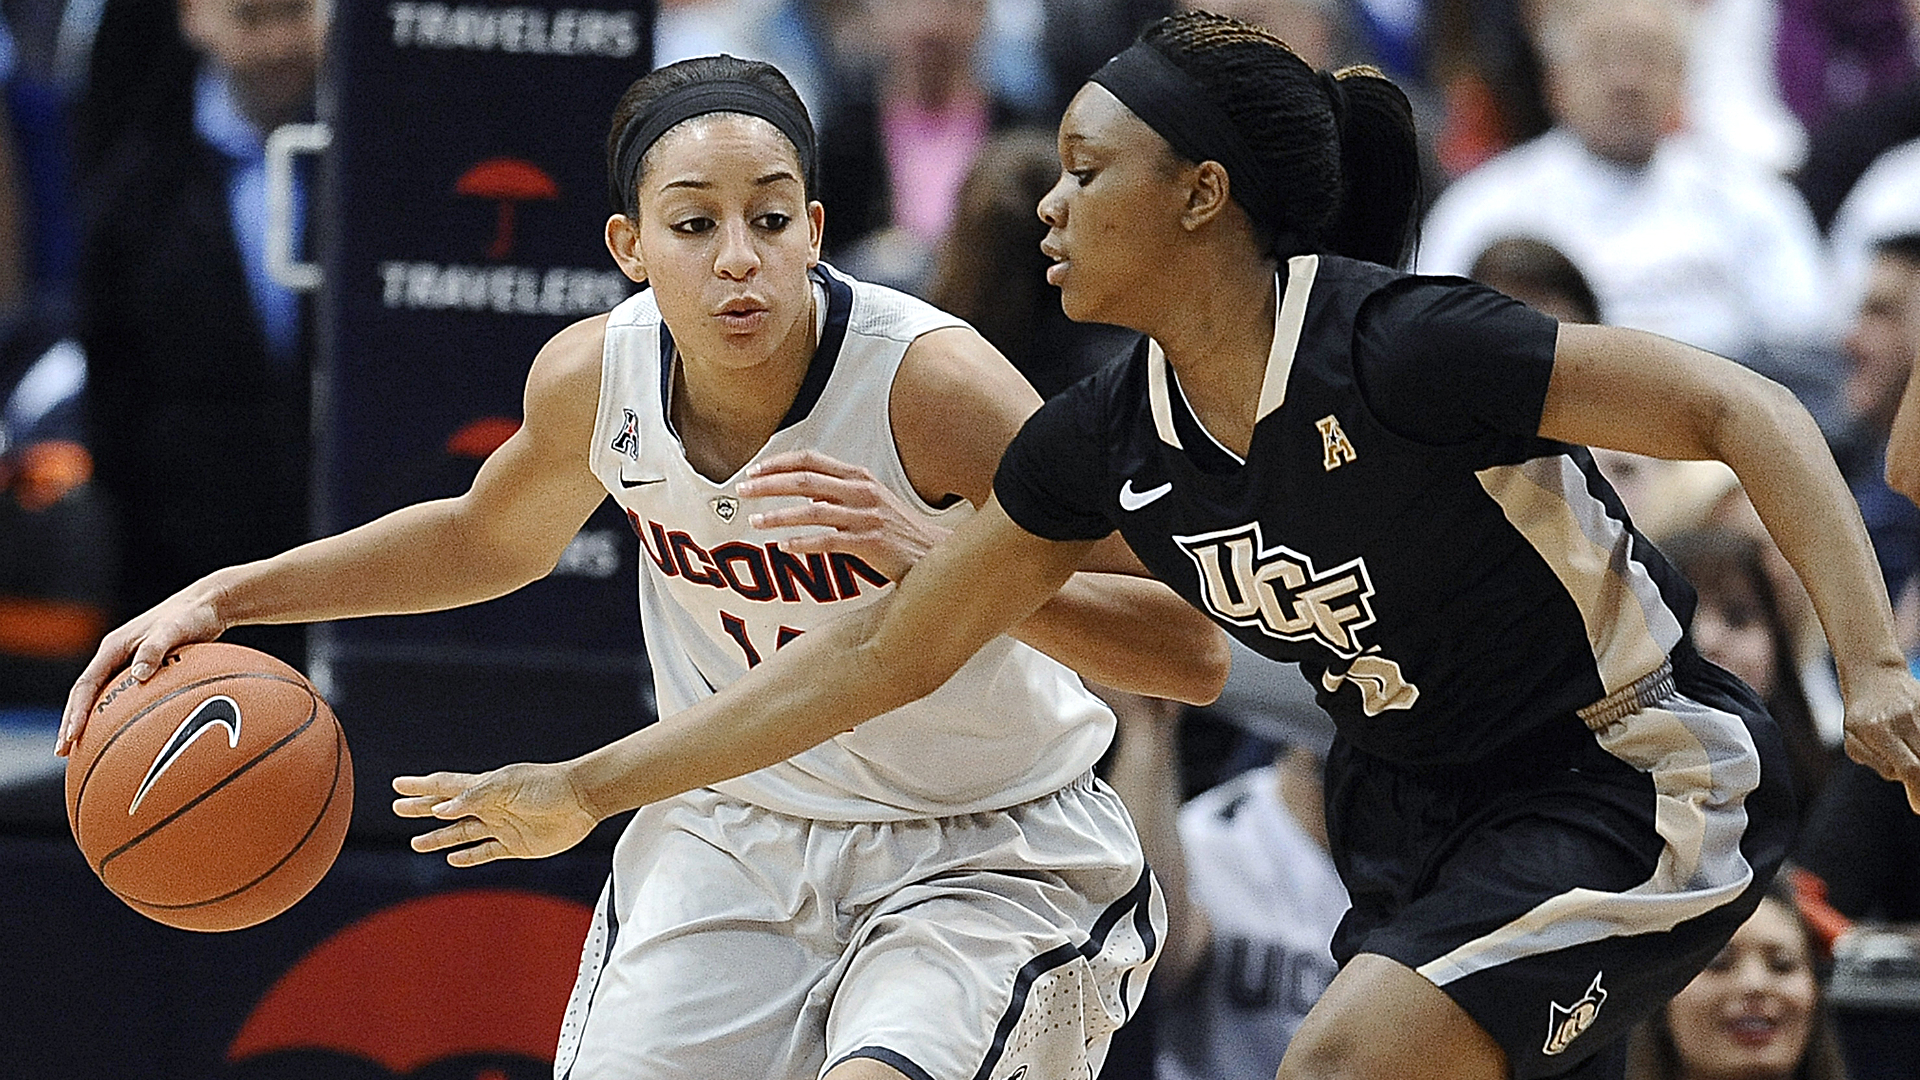 uconn-bria-hartley-ftr-020314-ap